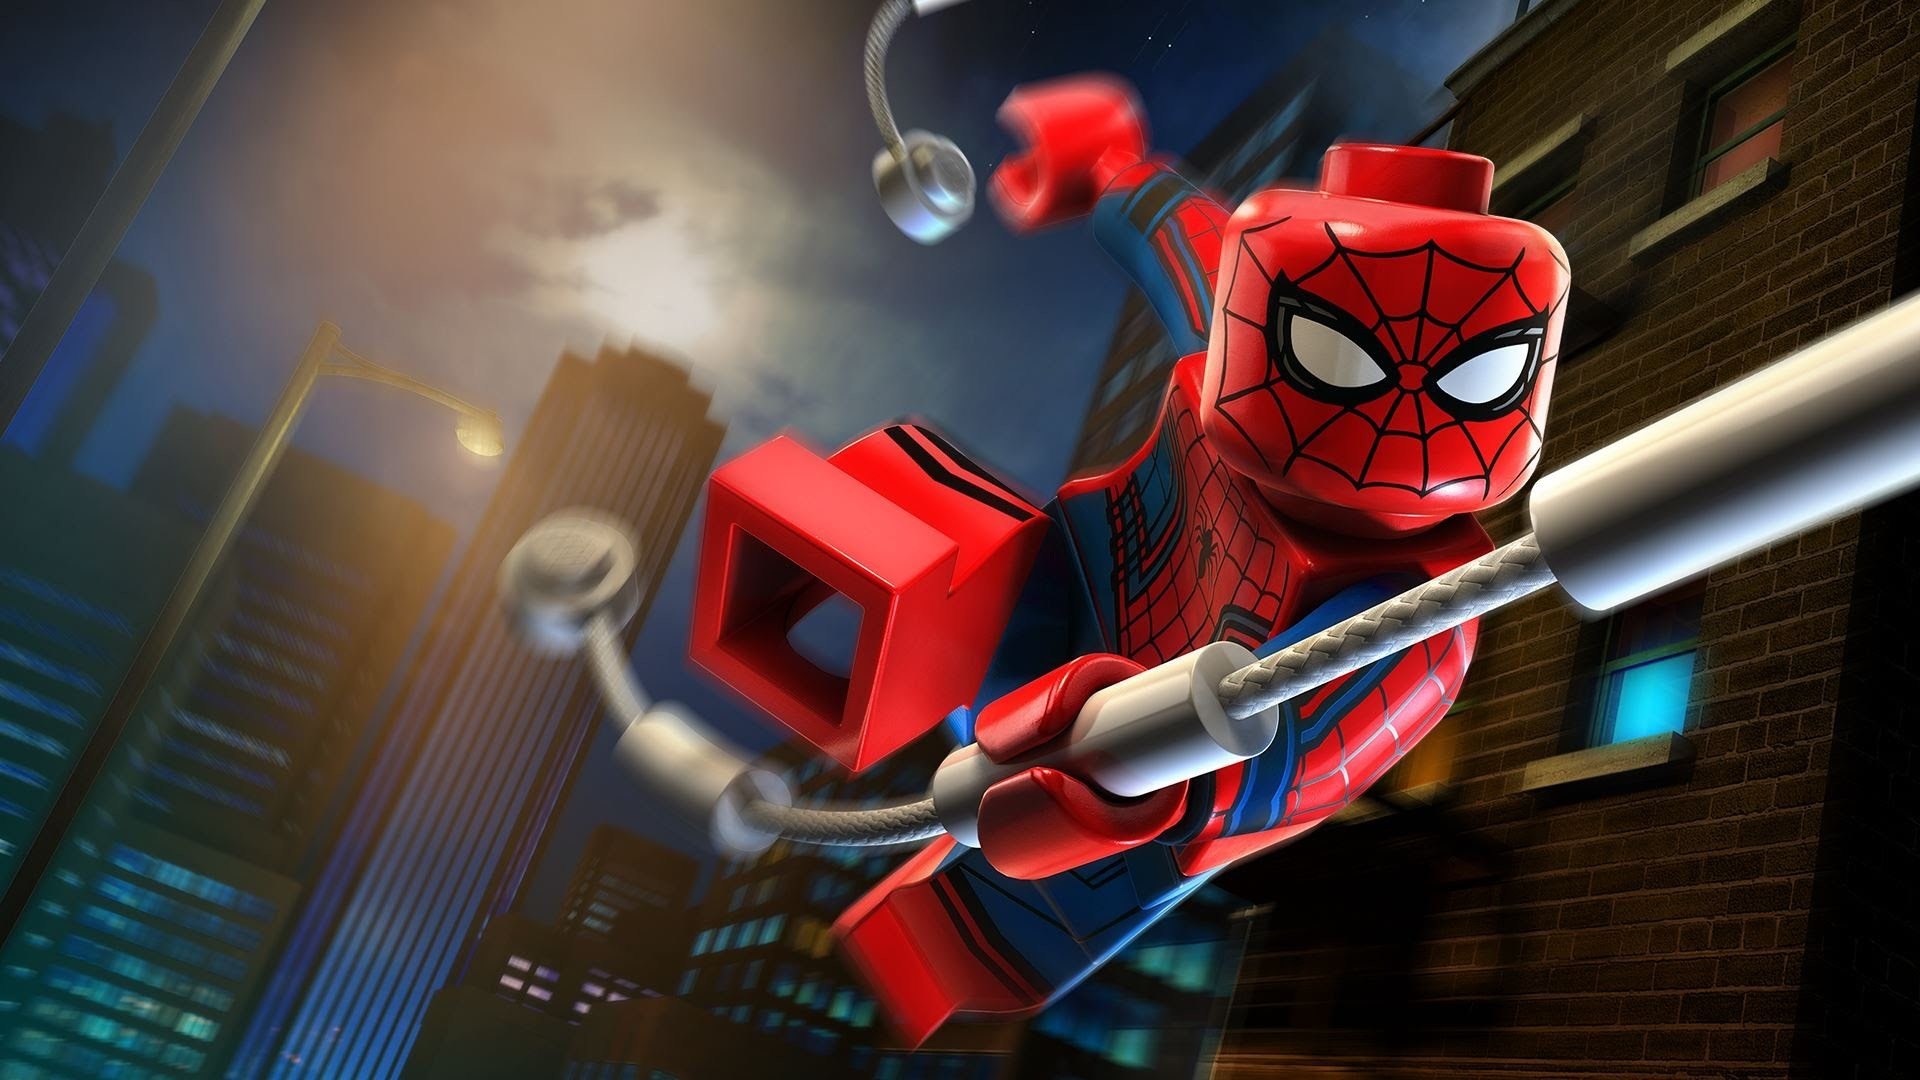 Lego Spiderman Wallpaper 76 Images